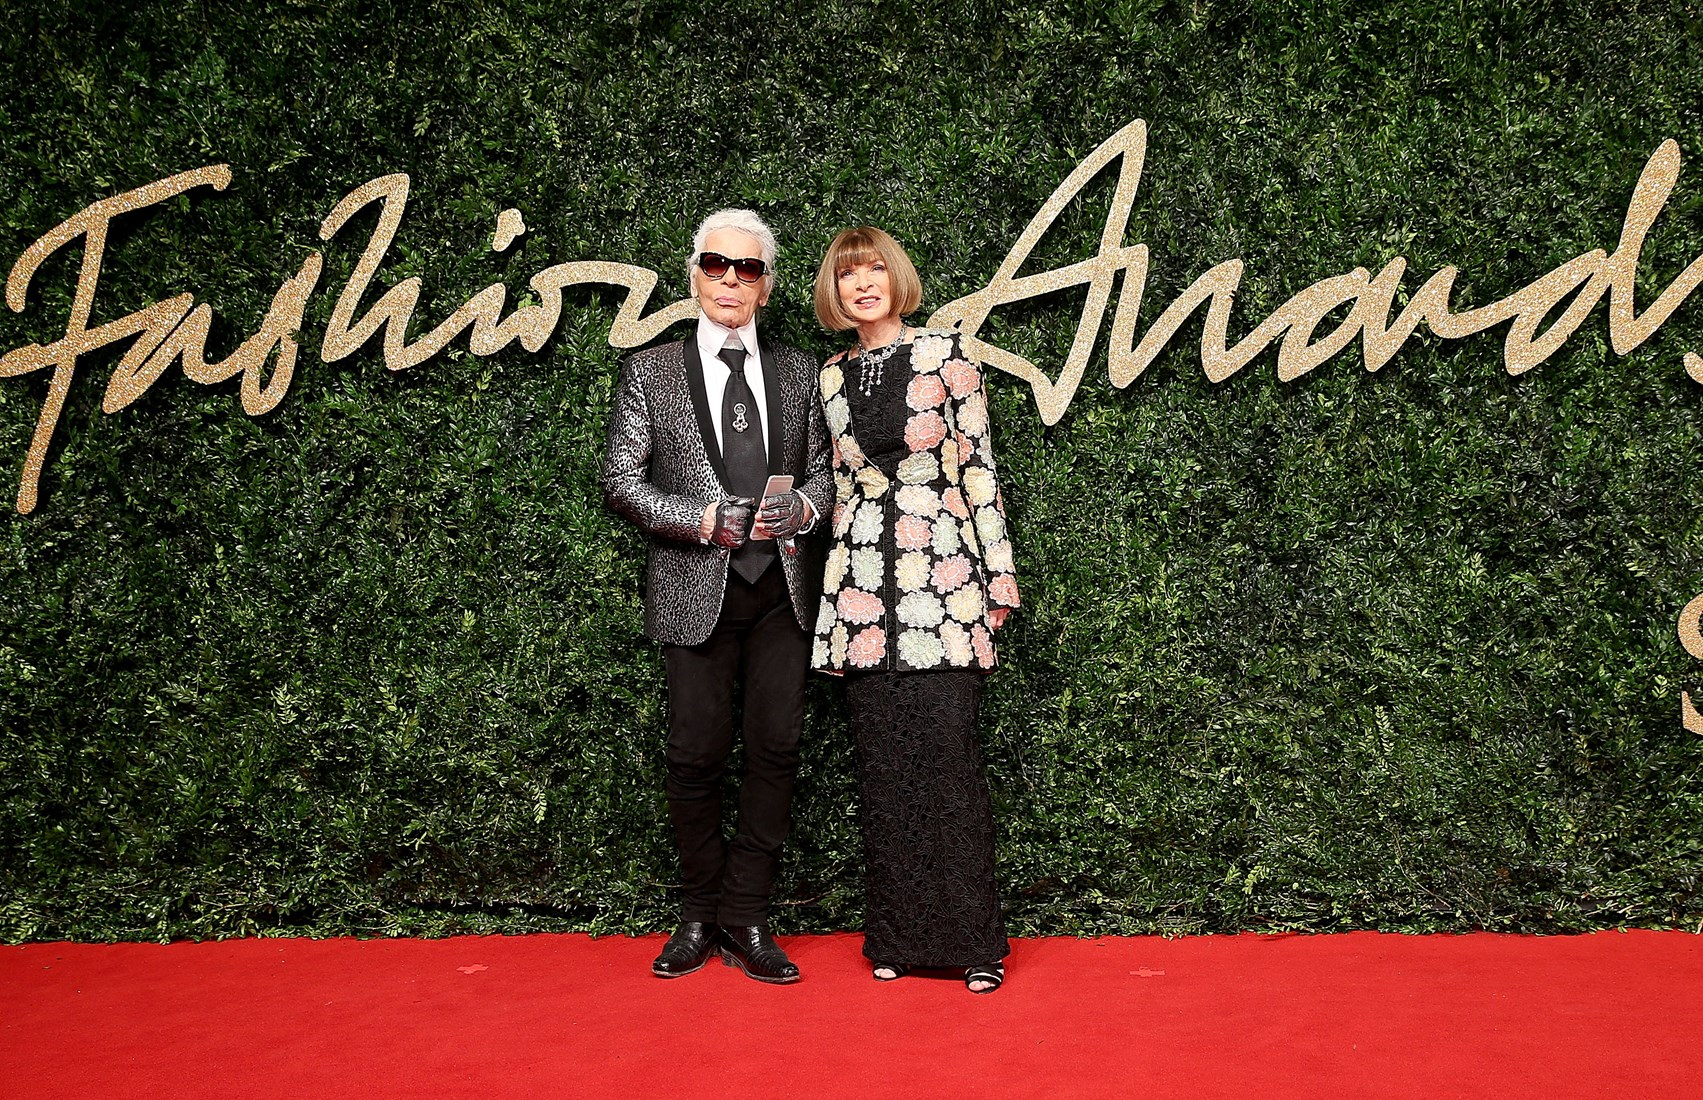 image via  fashionawards.com